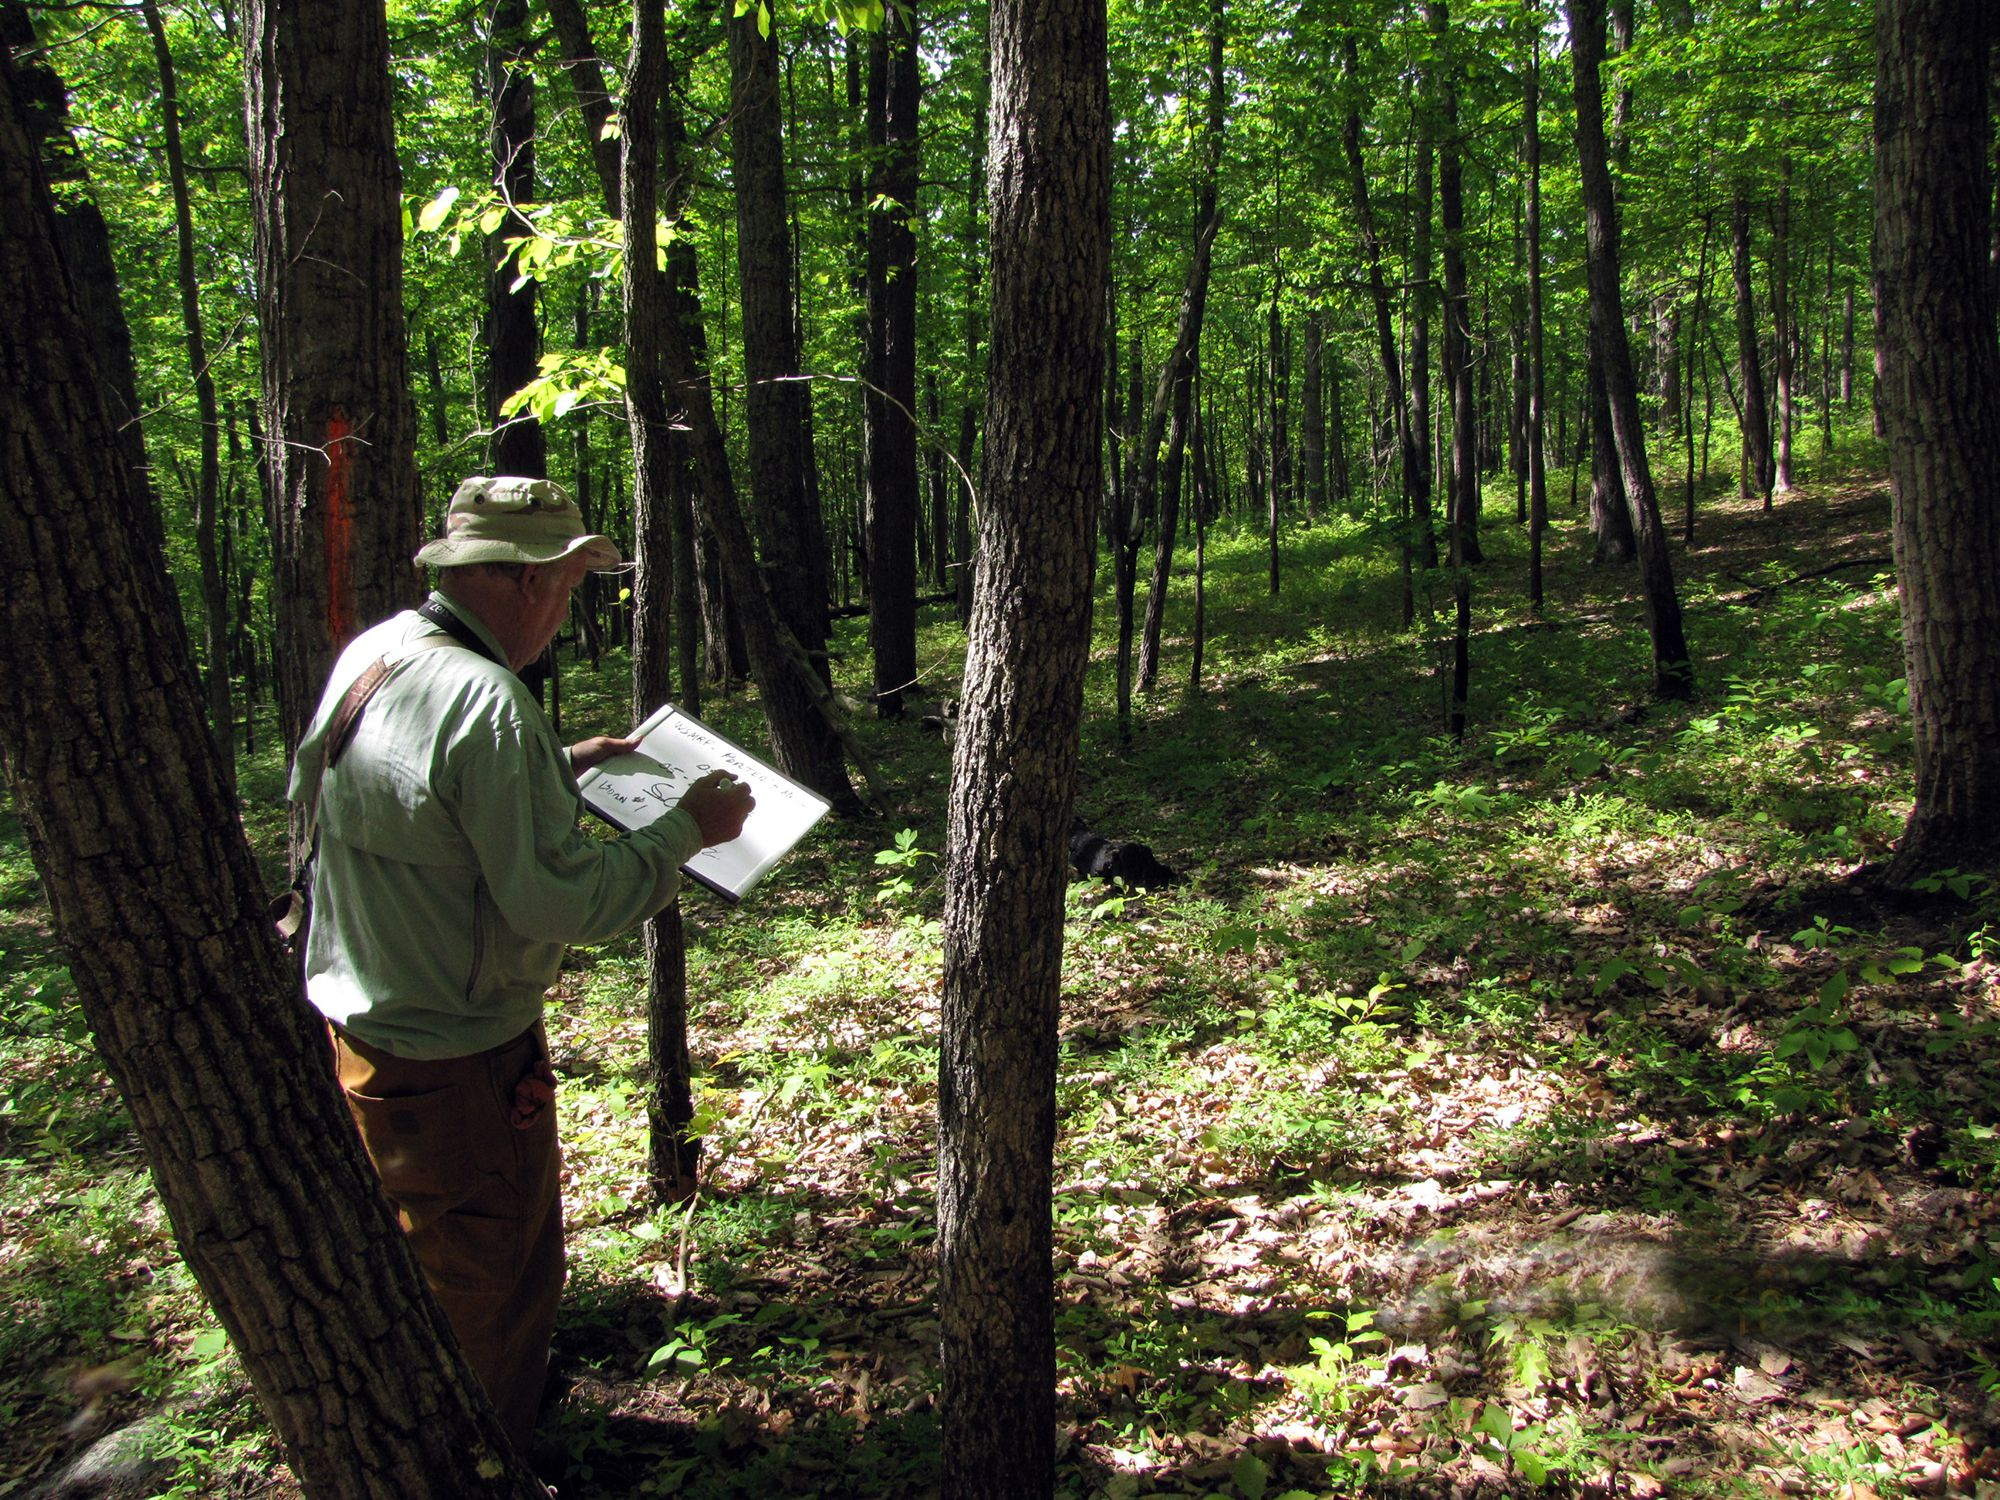 A man stands in a forest holding a clipboard and recording notes about the bird species observed in the area. Light dapples the forest floor as it filters through the thick trees.